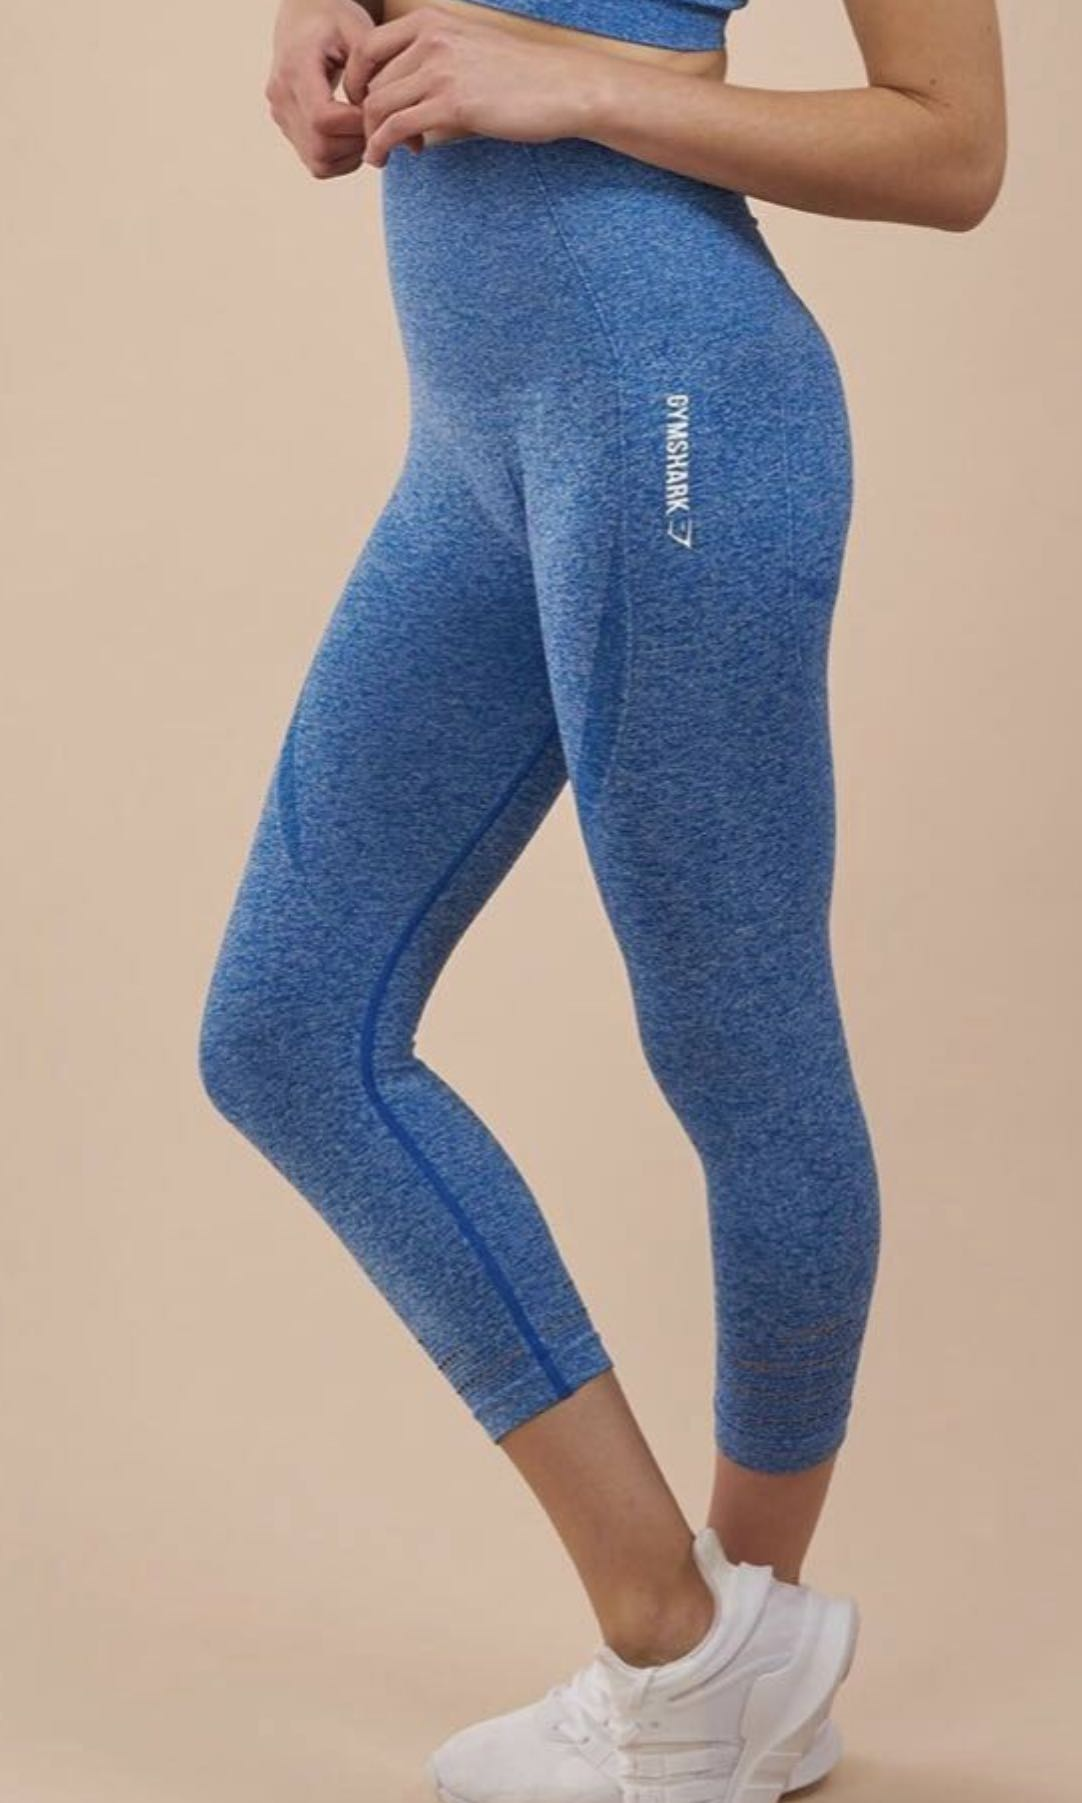 e4ef8955179d8 GYMSHARK Authentic Seamless Leggings Cropped (Blueberry Marl ...